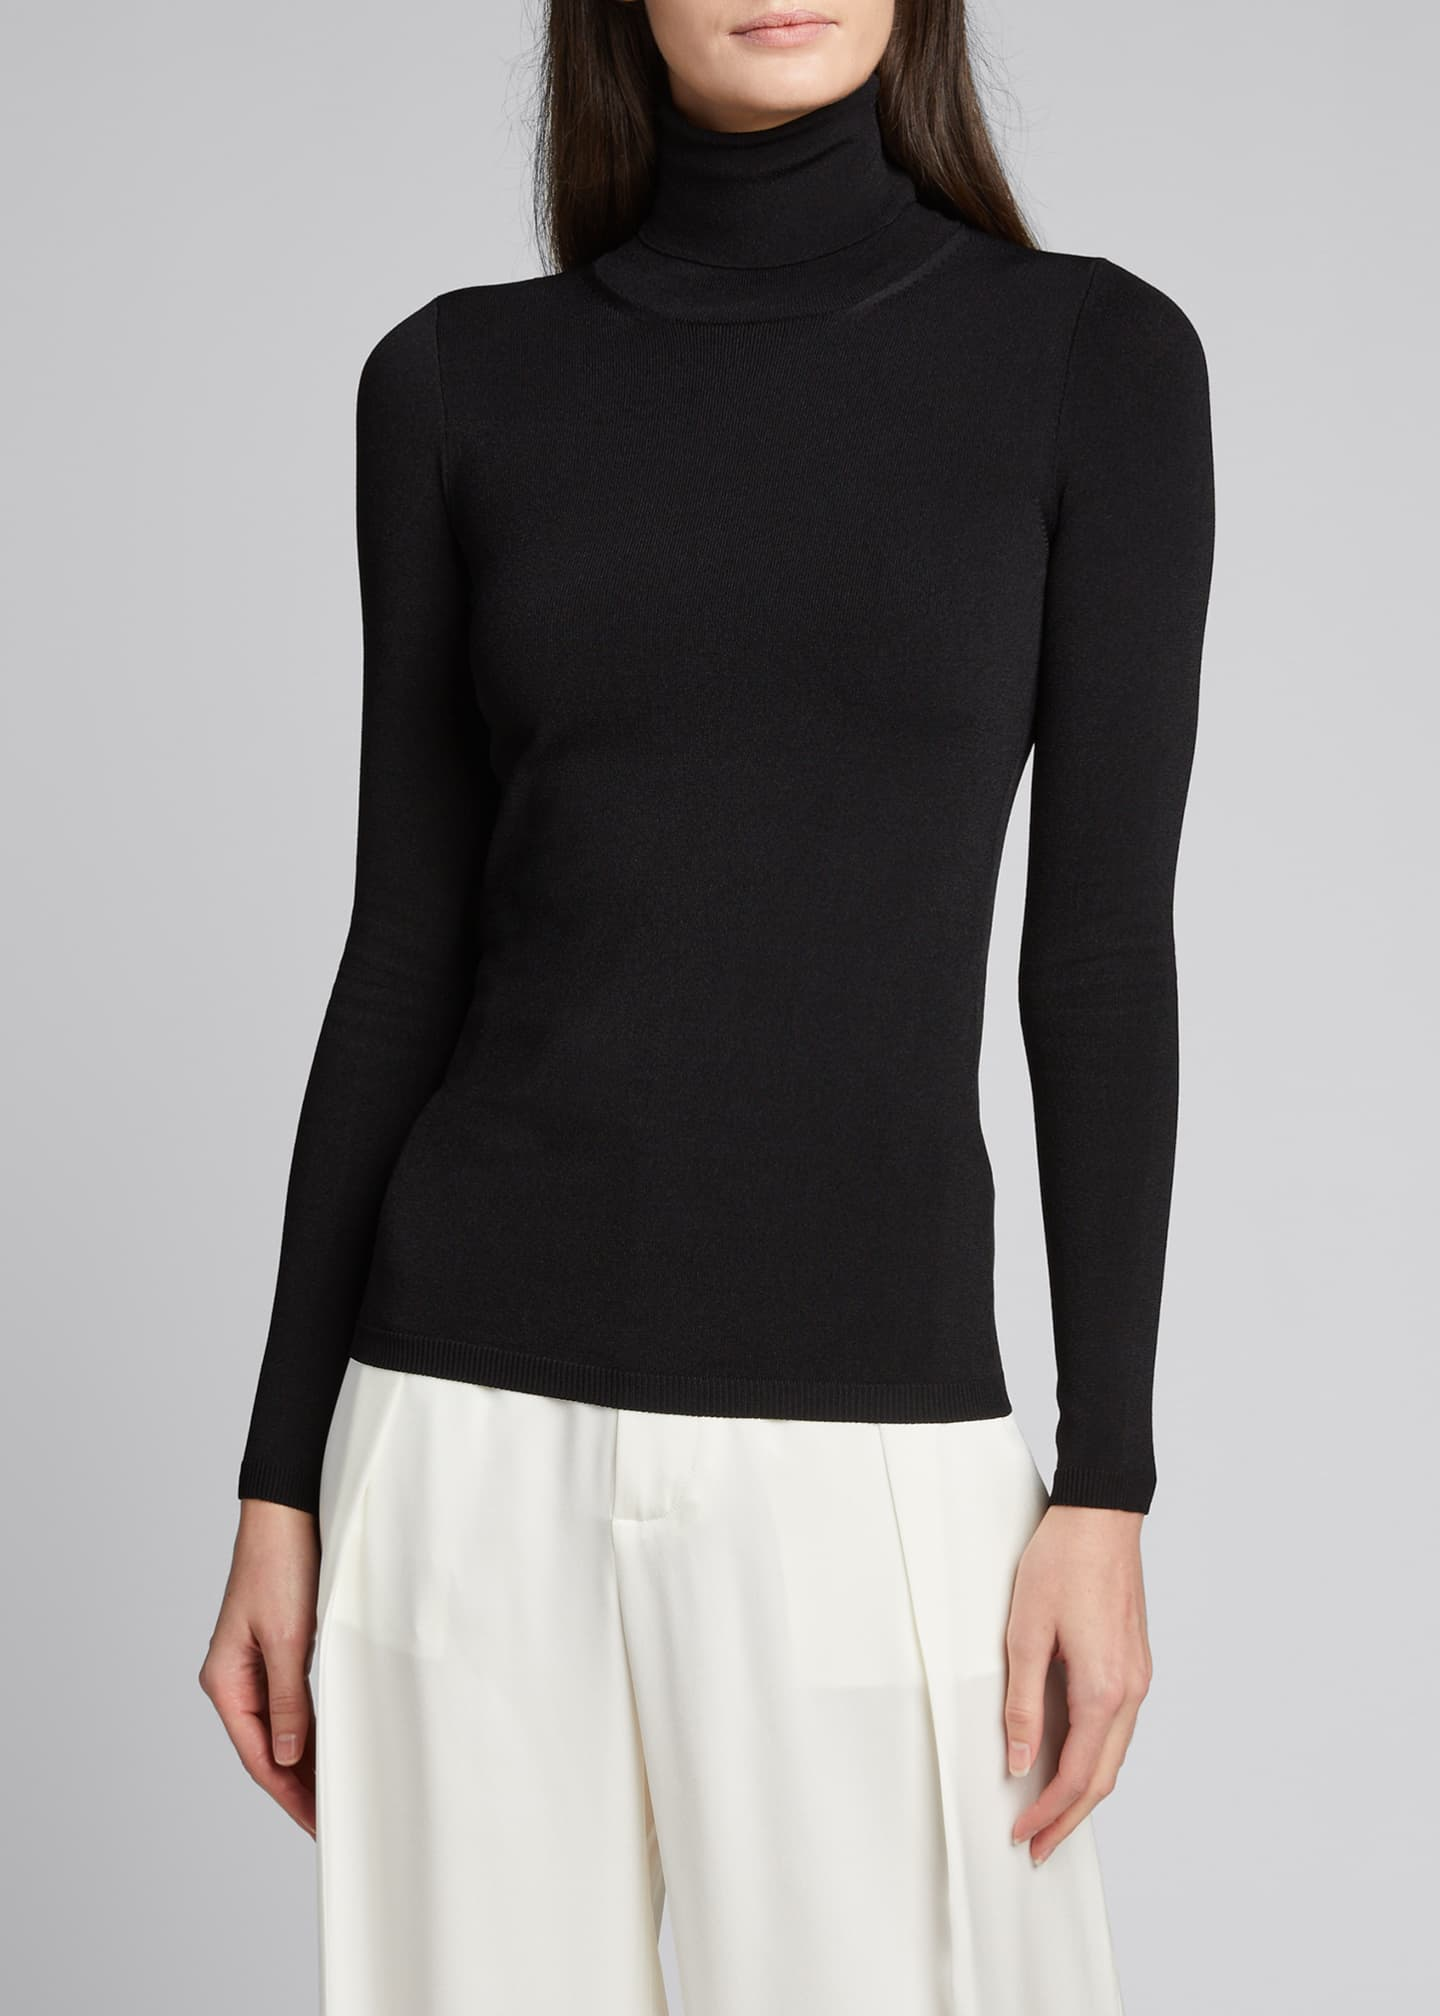 Image 3 of 5: Compact Knit Turtleneck Sweater